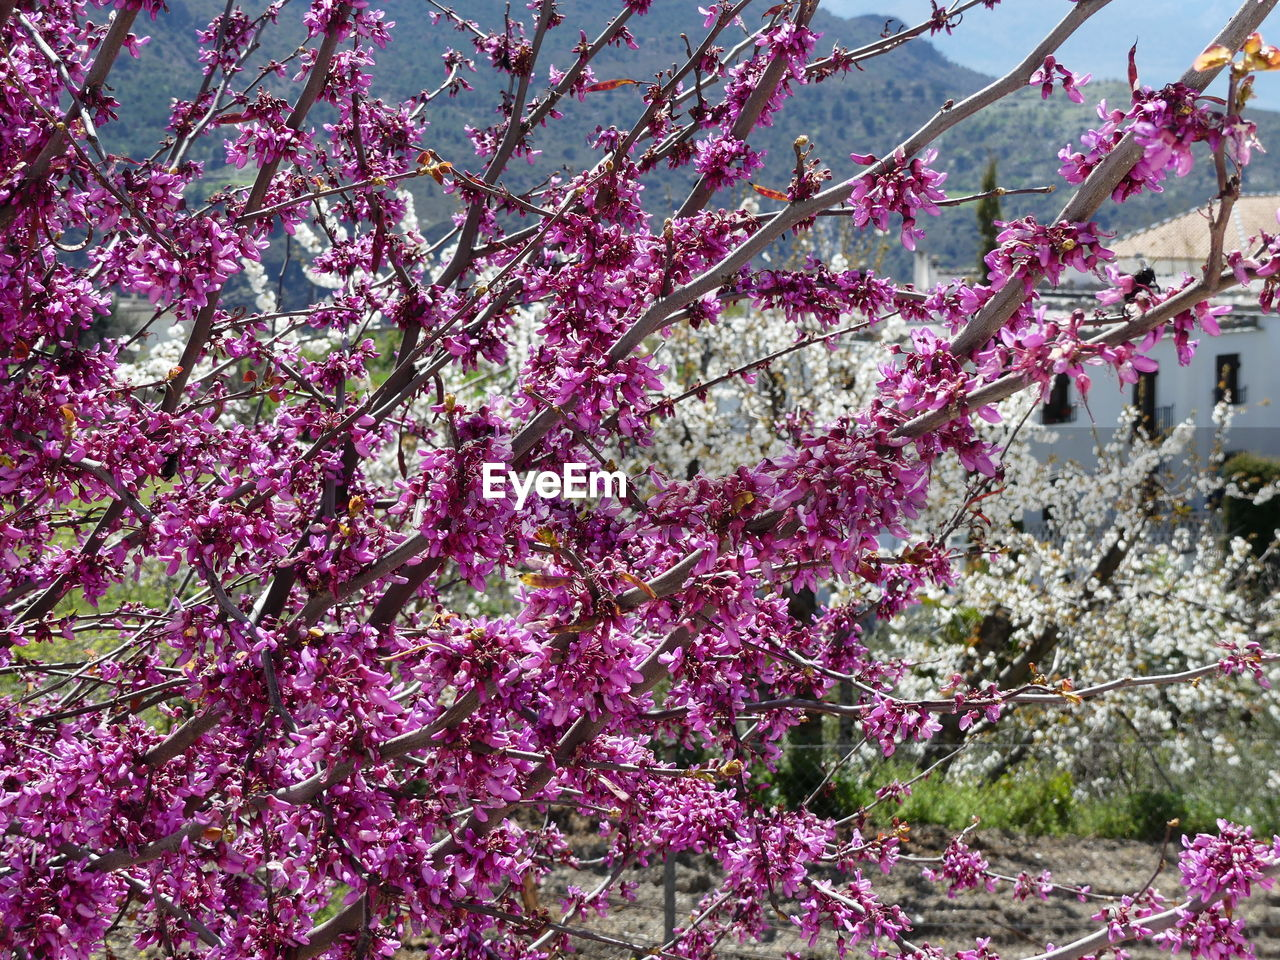 flower, tree, blossom, cherry blossom, beauty in nature, springtime, fragility, branch, pink color, growth, cherry tree, freshness, nature, botany, no people, low angle view, day, twig, plum blossom, outdoors, blooming, flower head, close-up, sky